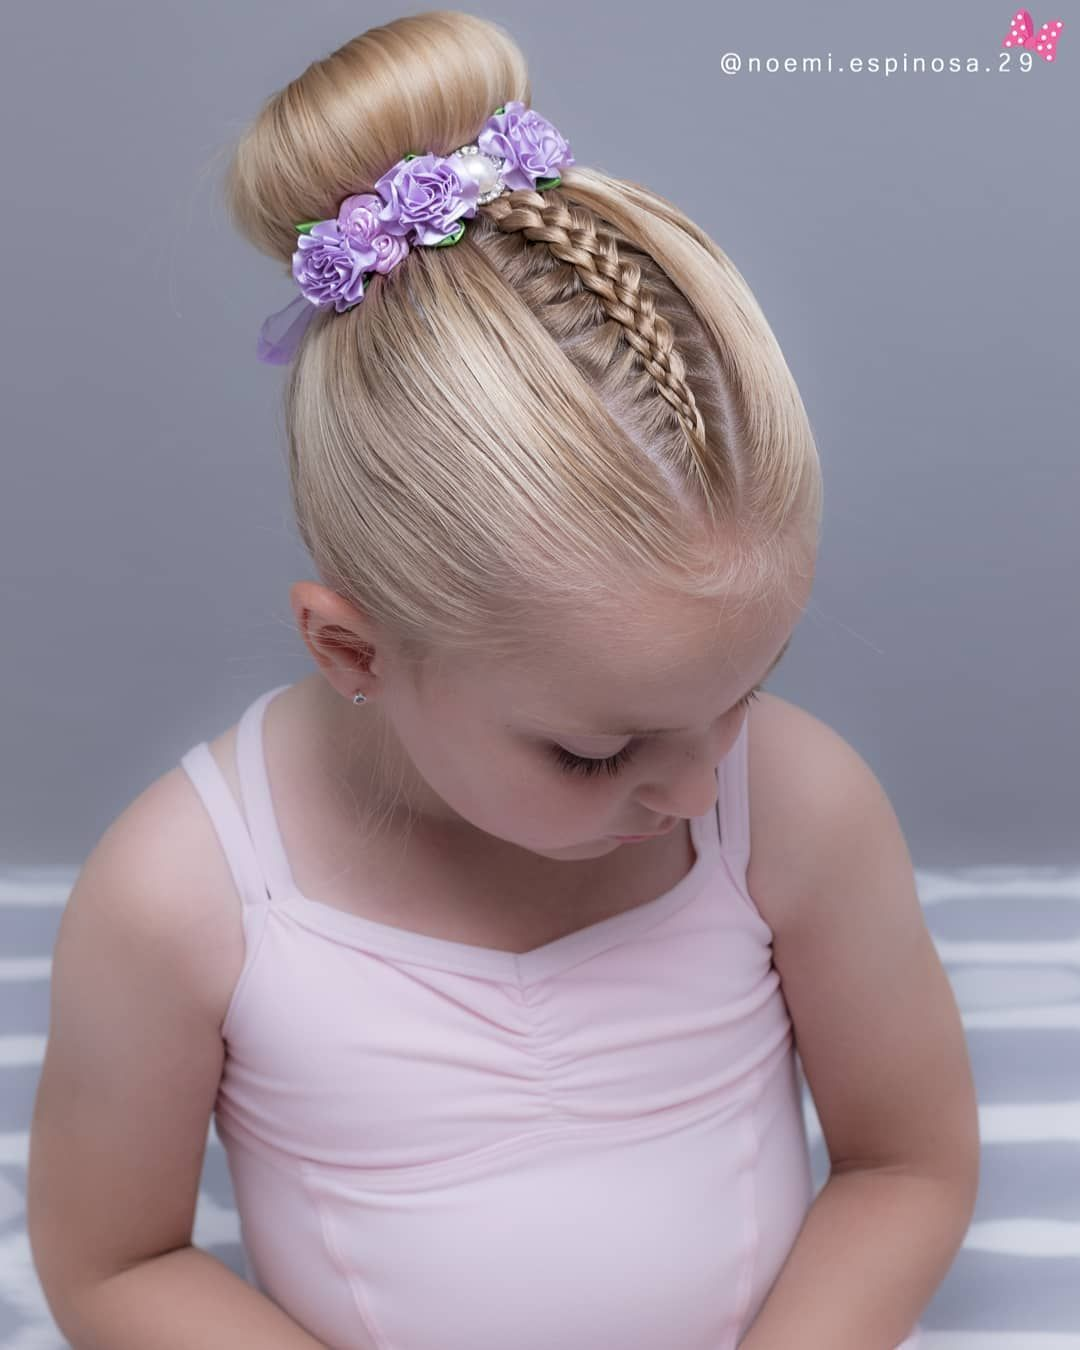 160 Braids Hairstyle Ideas For Little Kids Little Girl Curly